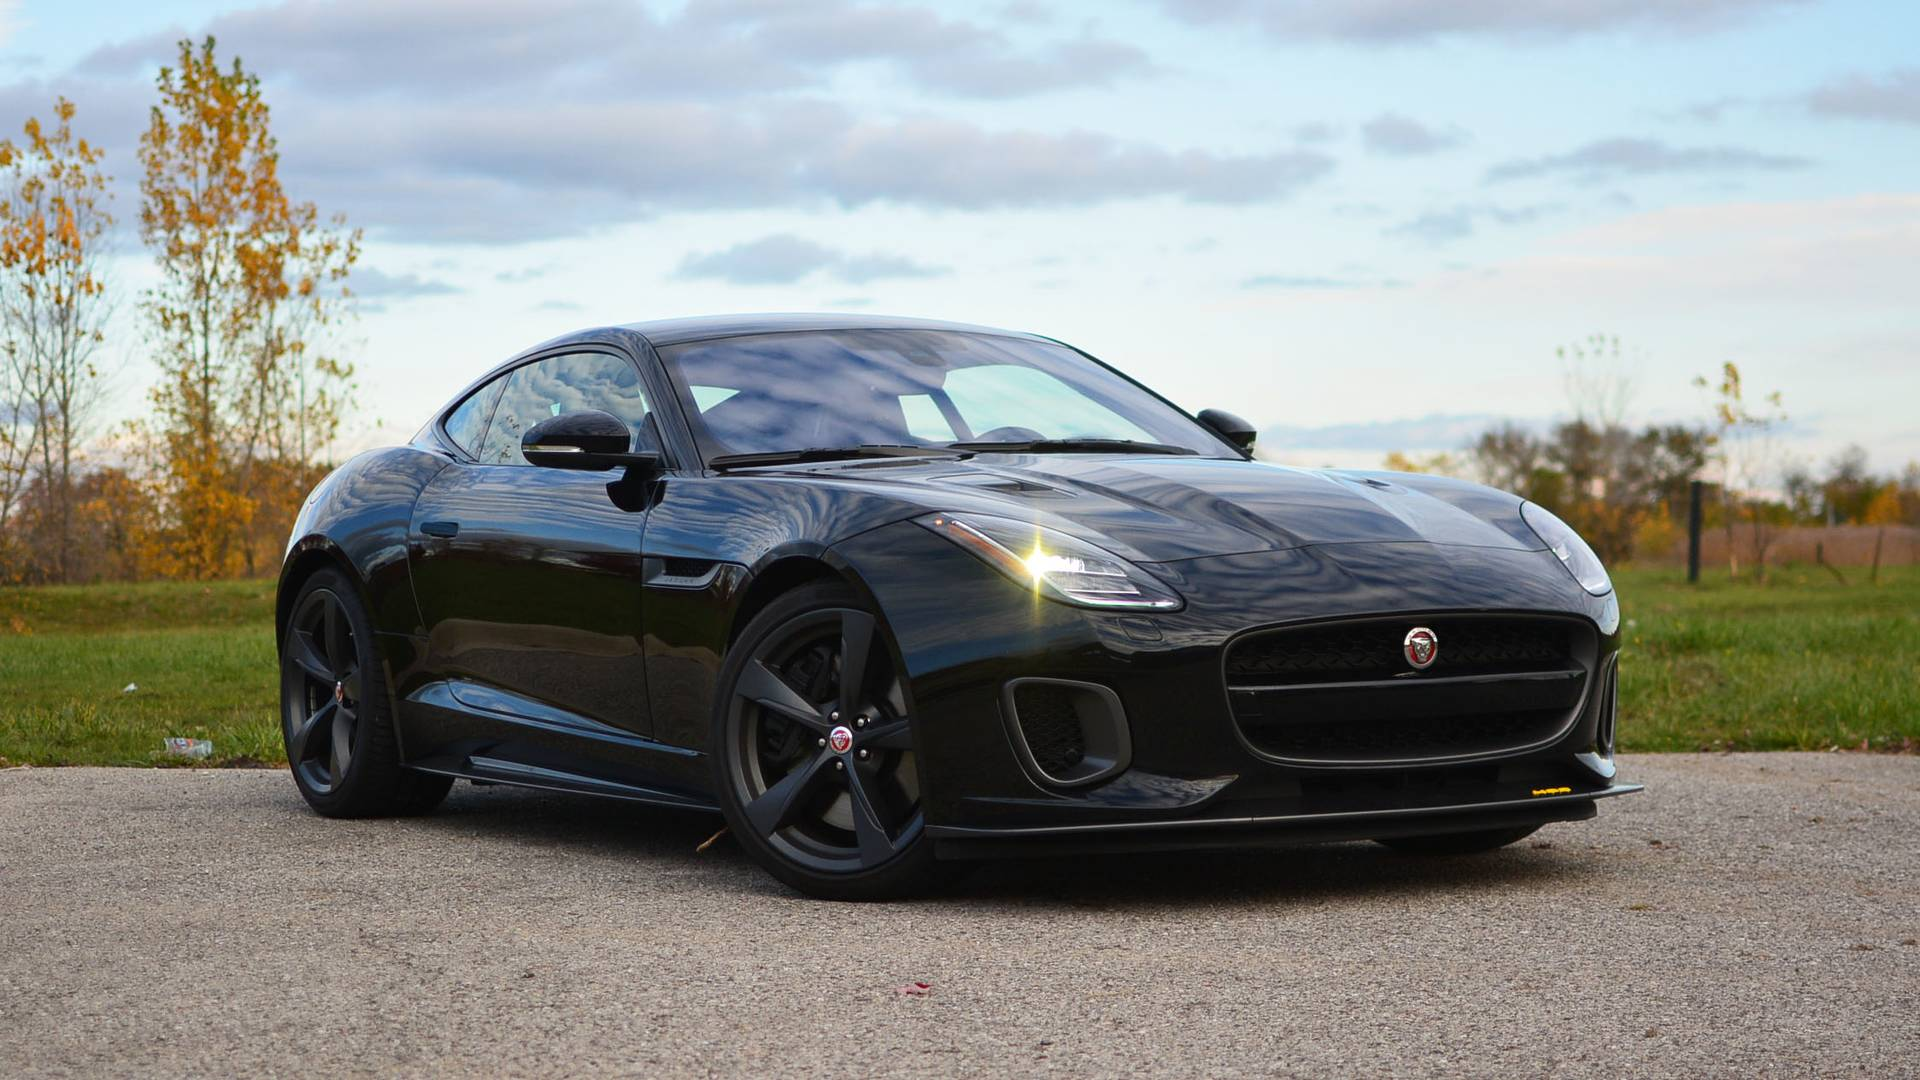 2018 jaguar f type 400 sport review more of a great thing 2018 jaguar f type 400 sport review